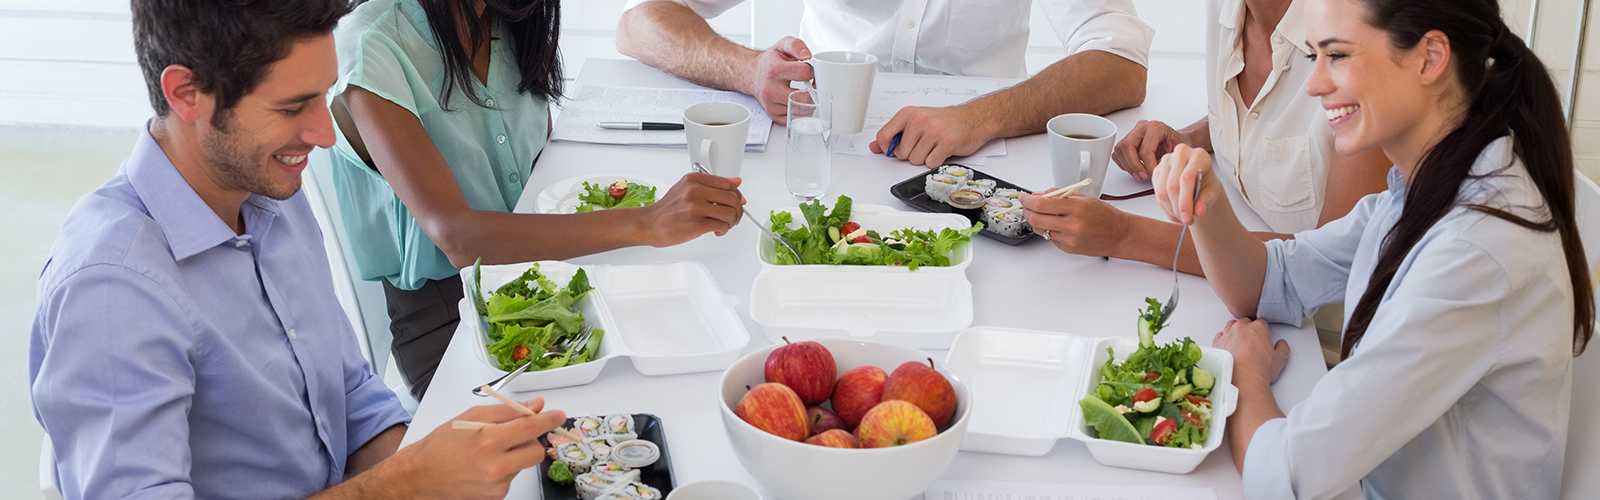 people eating salads in the workplace